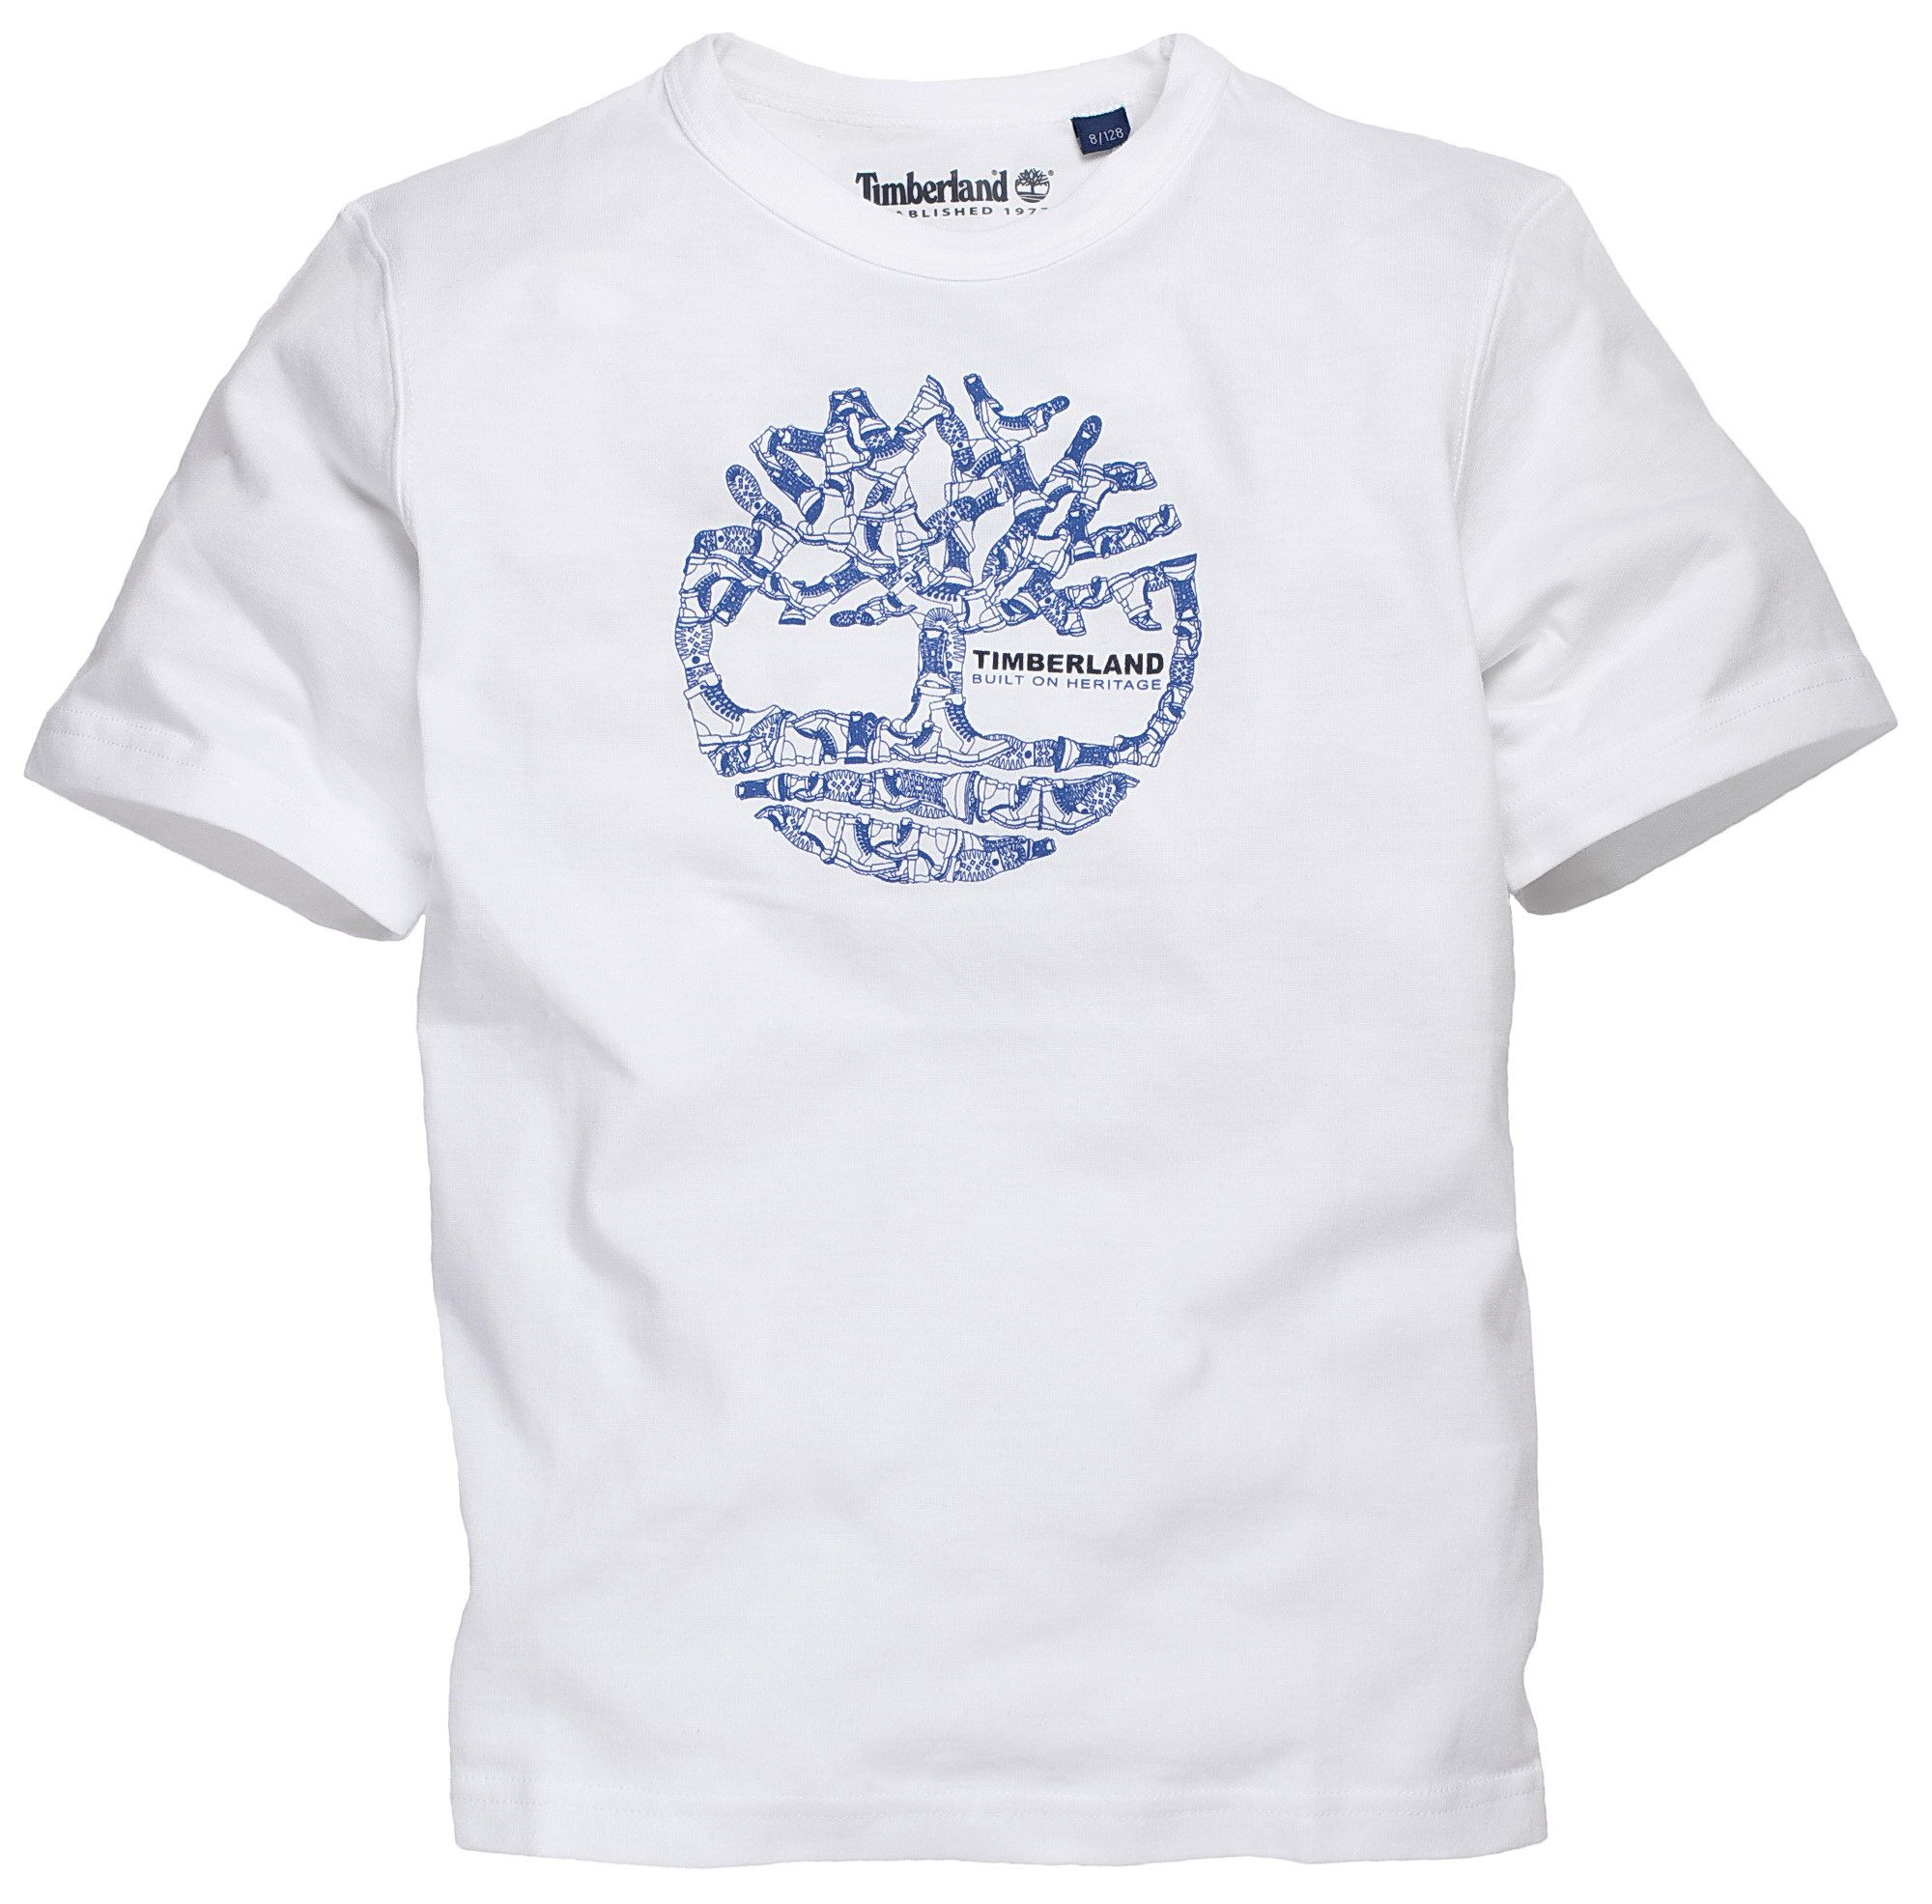 Timberland Short-sleeved T-shirt - Blue `5 yrs product image